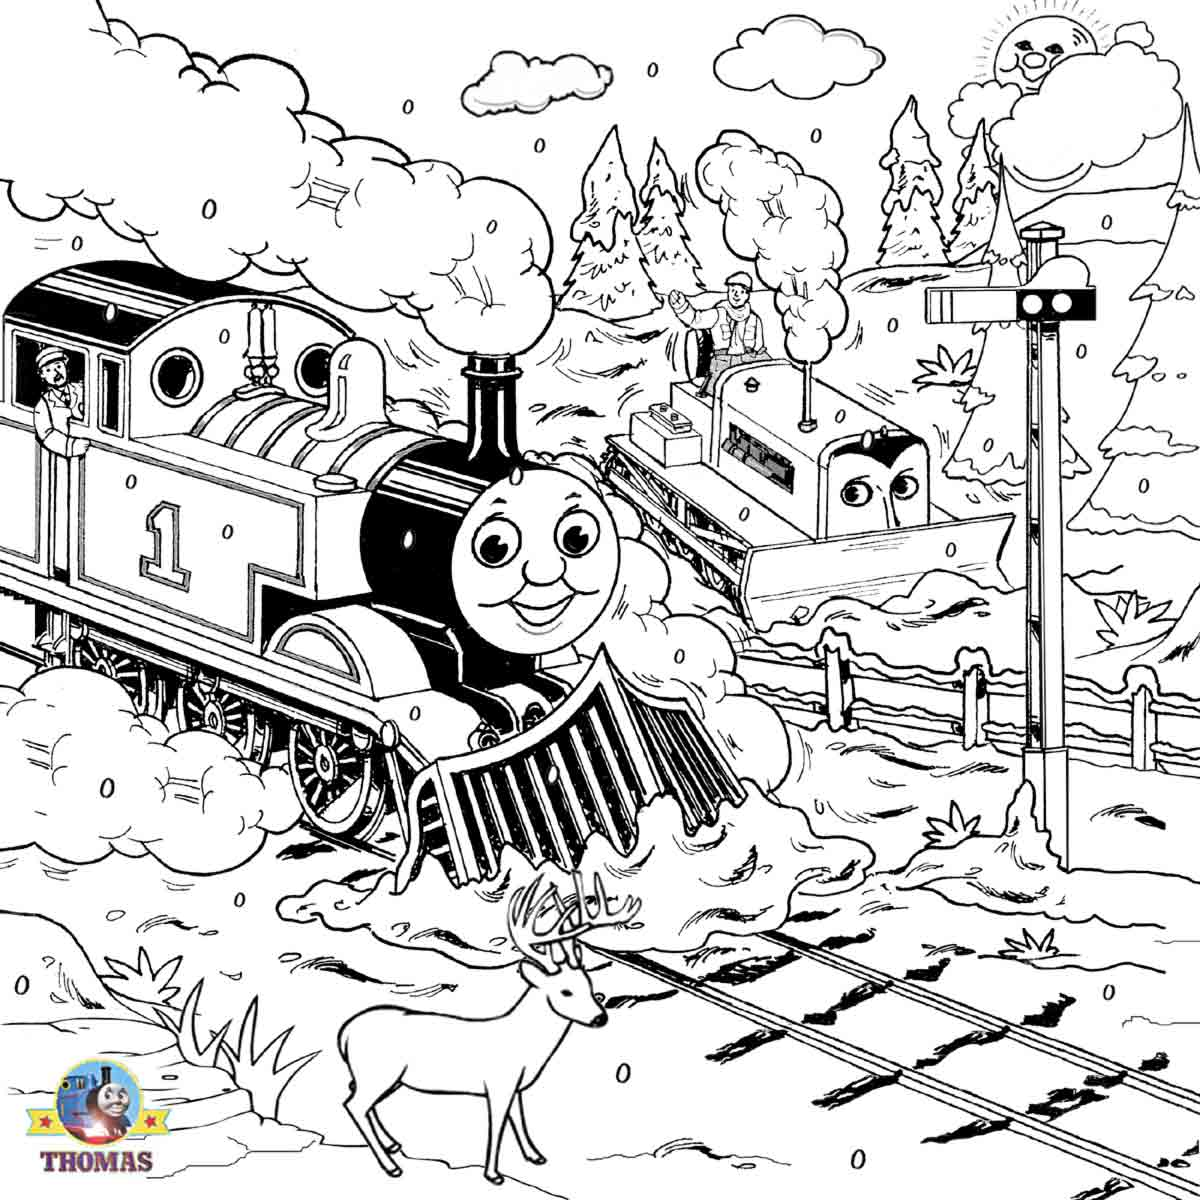 Thomas The Train Drawing300096 Free Coloring Pages Printable Pictures To Color Kids Drawing Ideas